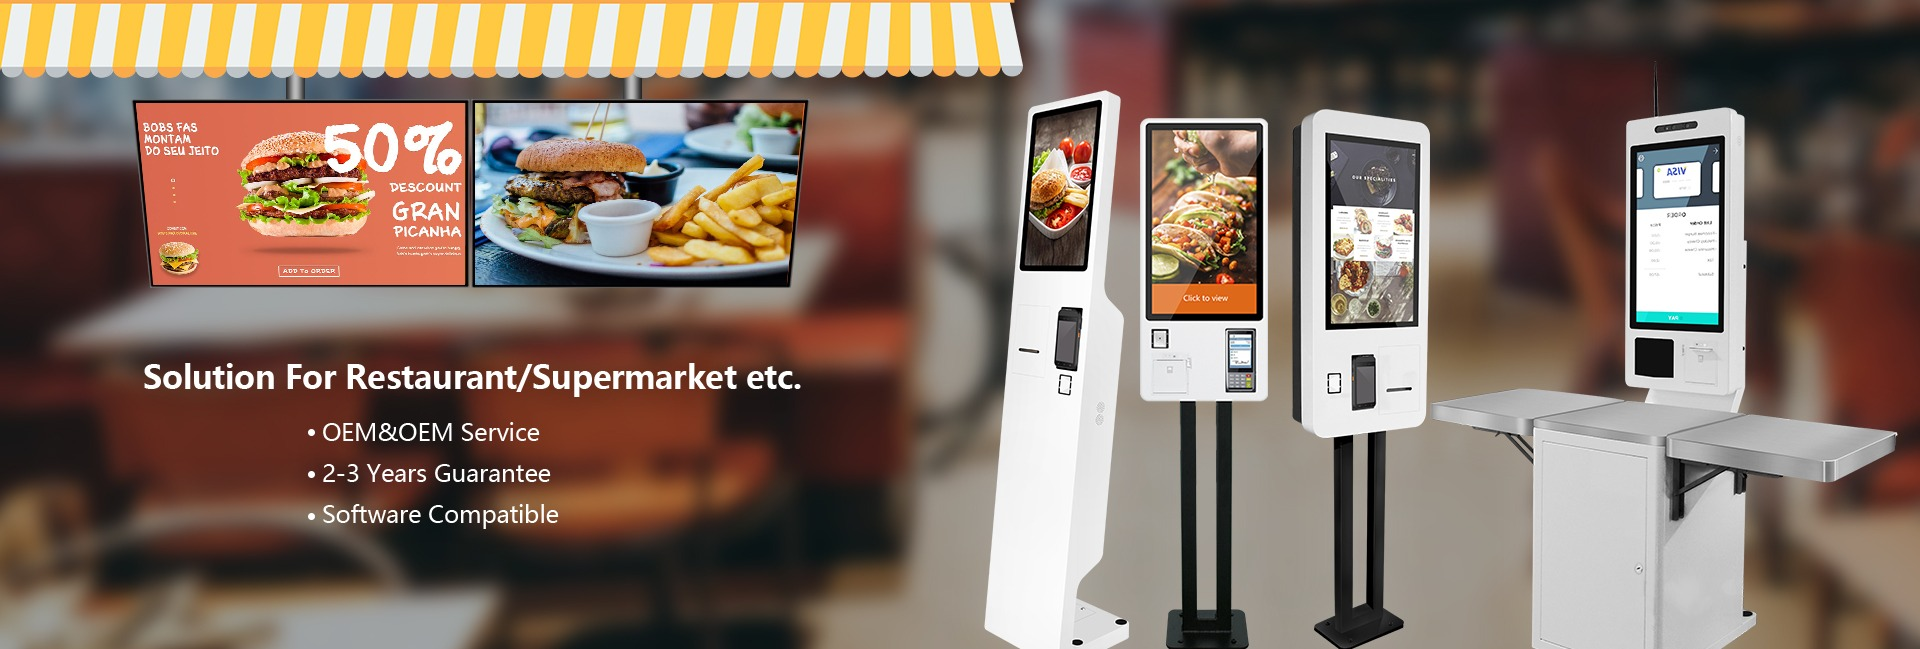 best online food ordering system Digital Screens and self order kiosk